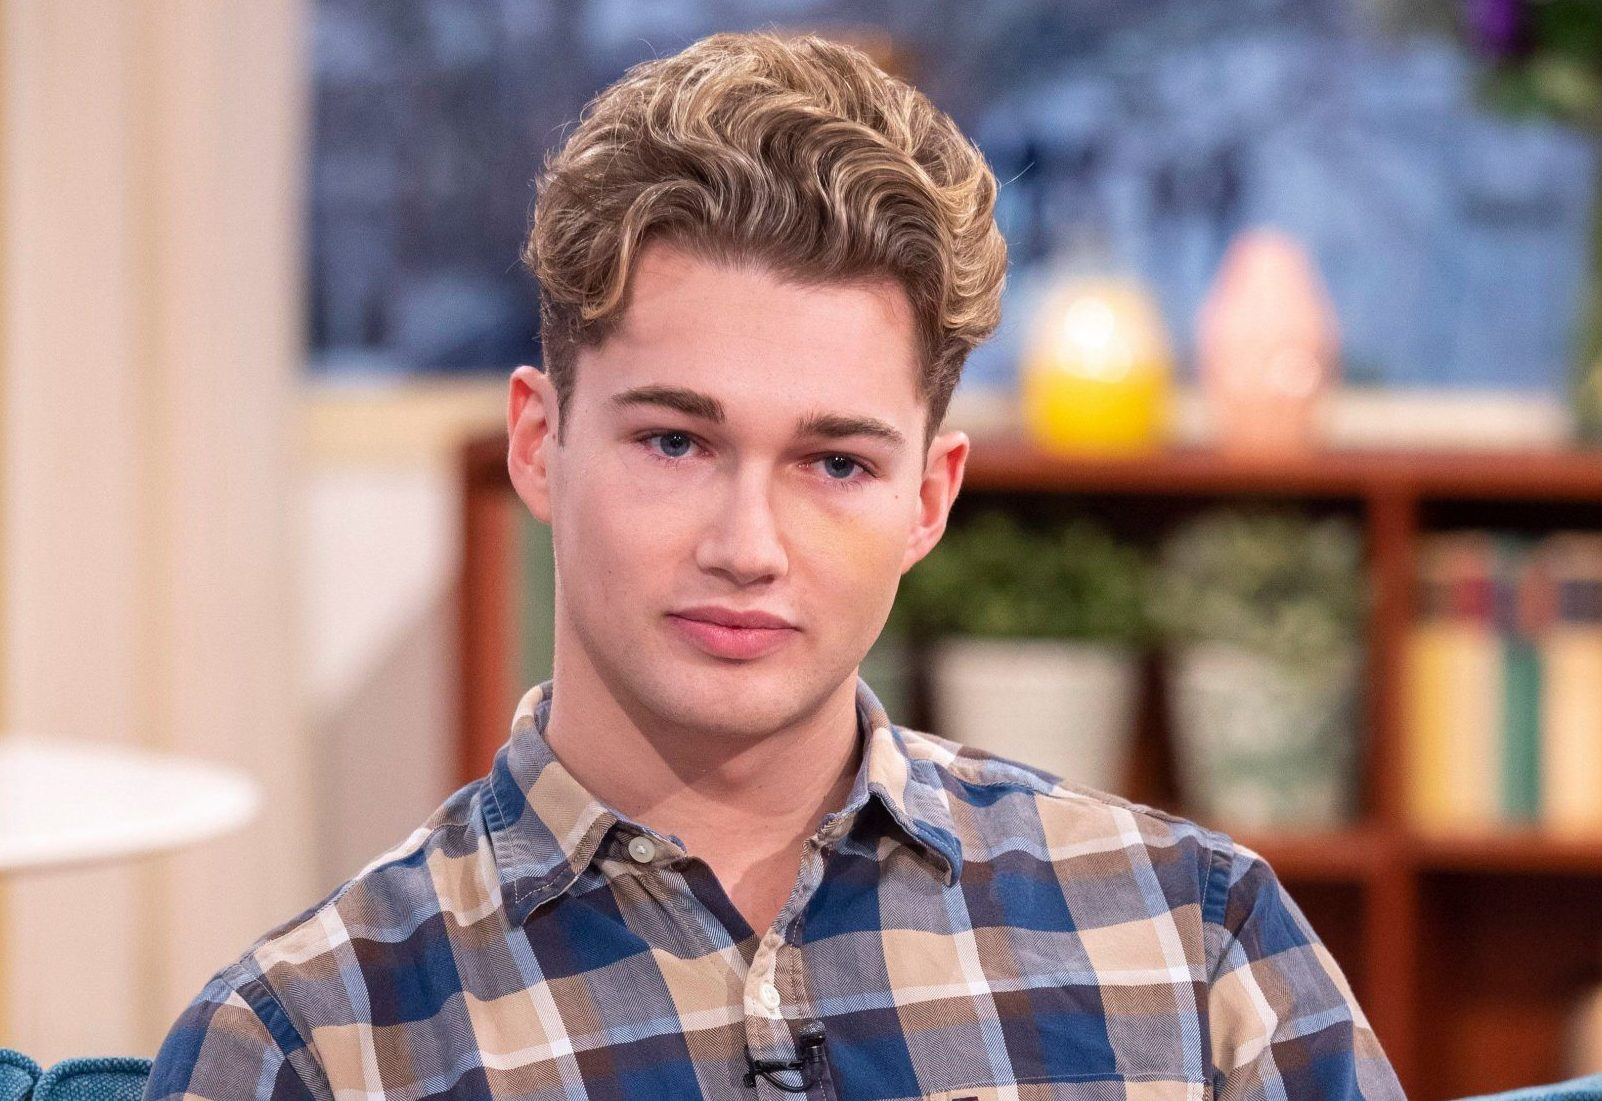 Strictly's AJ Pritchard 'hires security' in wake of nightclub attack